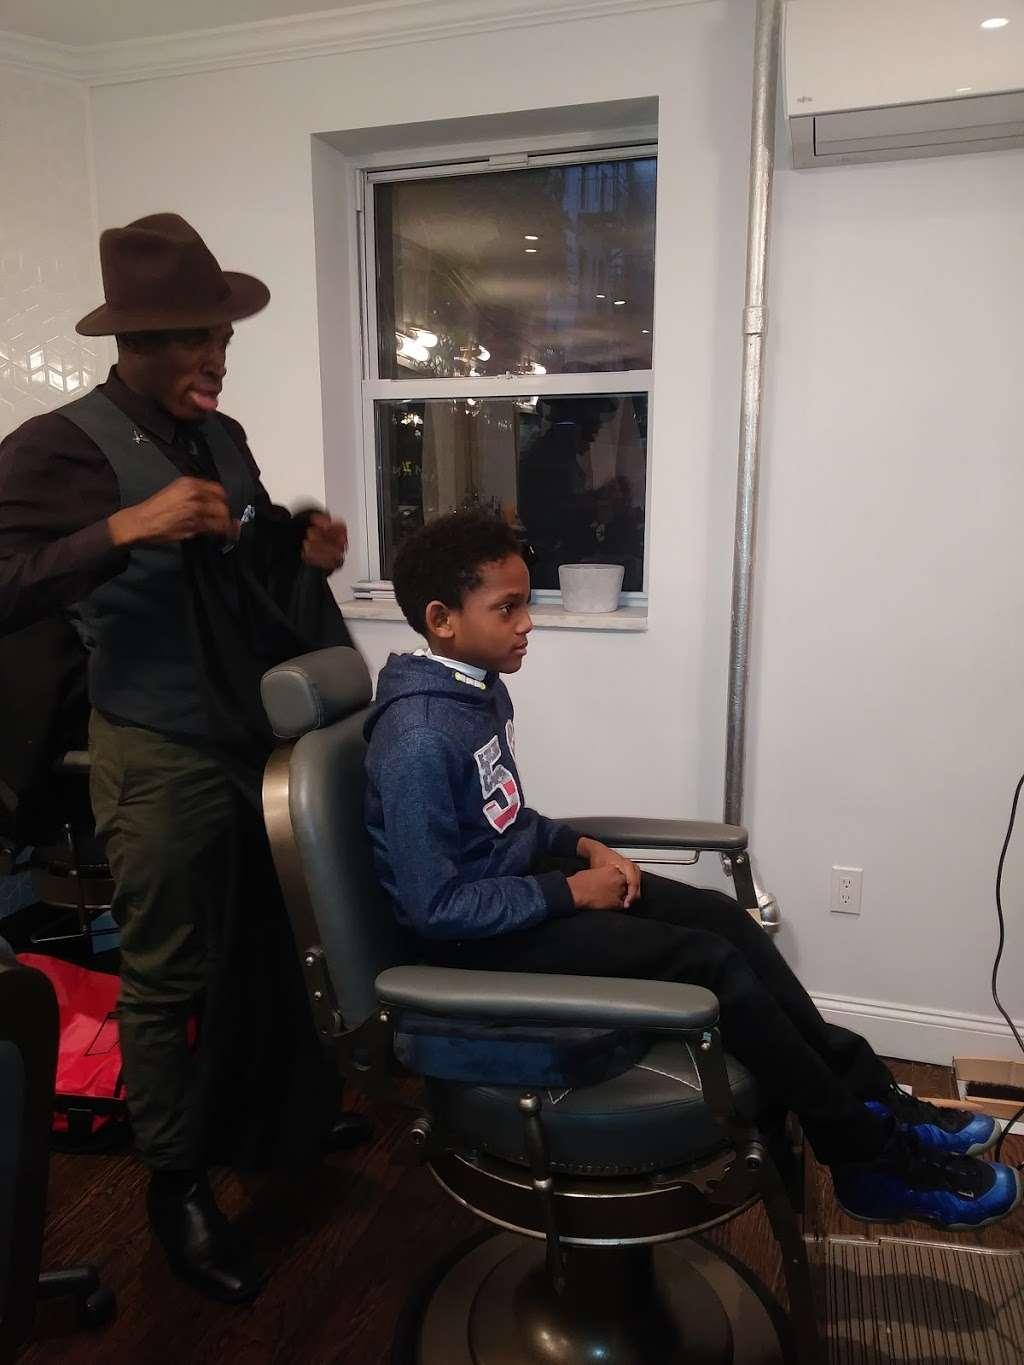 Classic Man Barber Lounge - hair care  | Photo 10 of 10 | Address: 443-445 E 9th St, New York, NY 10009, USA | Phone: (646) 484-5416